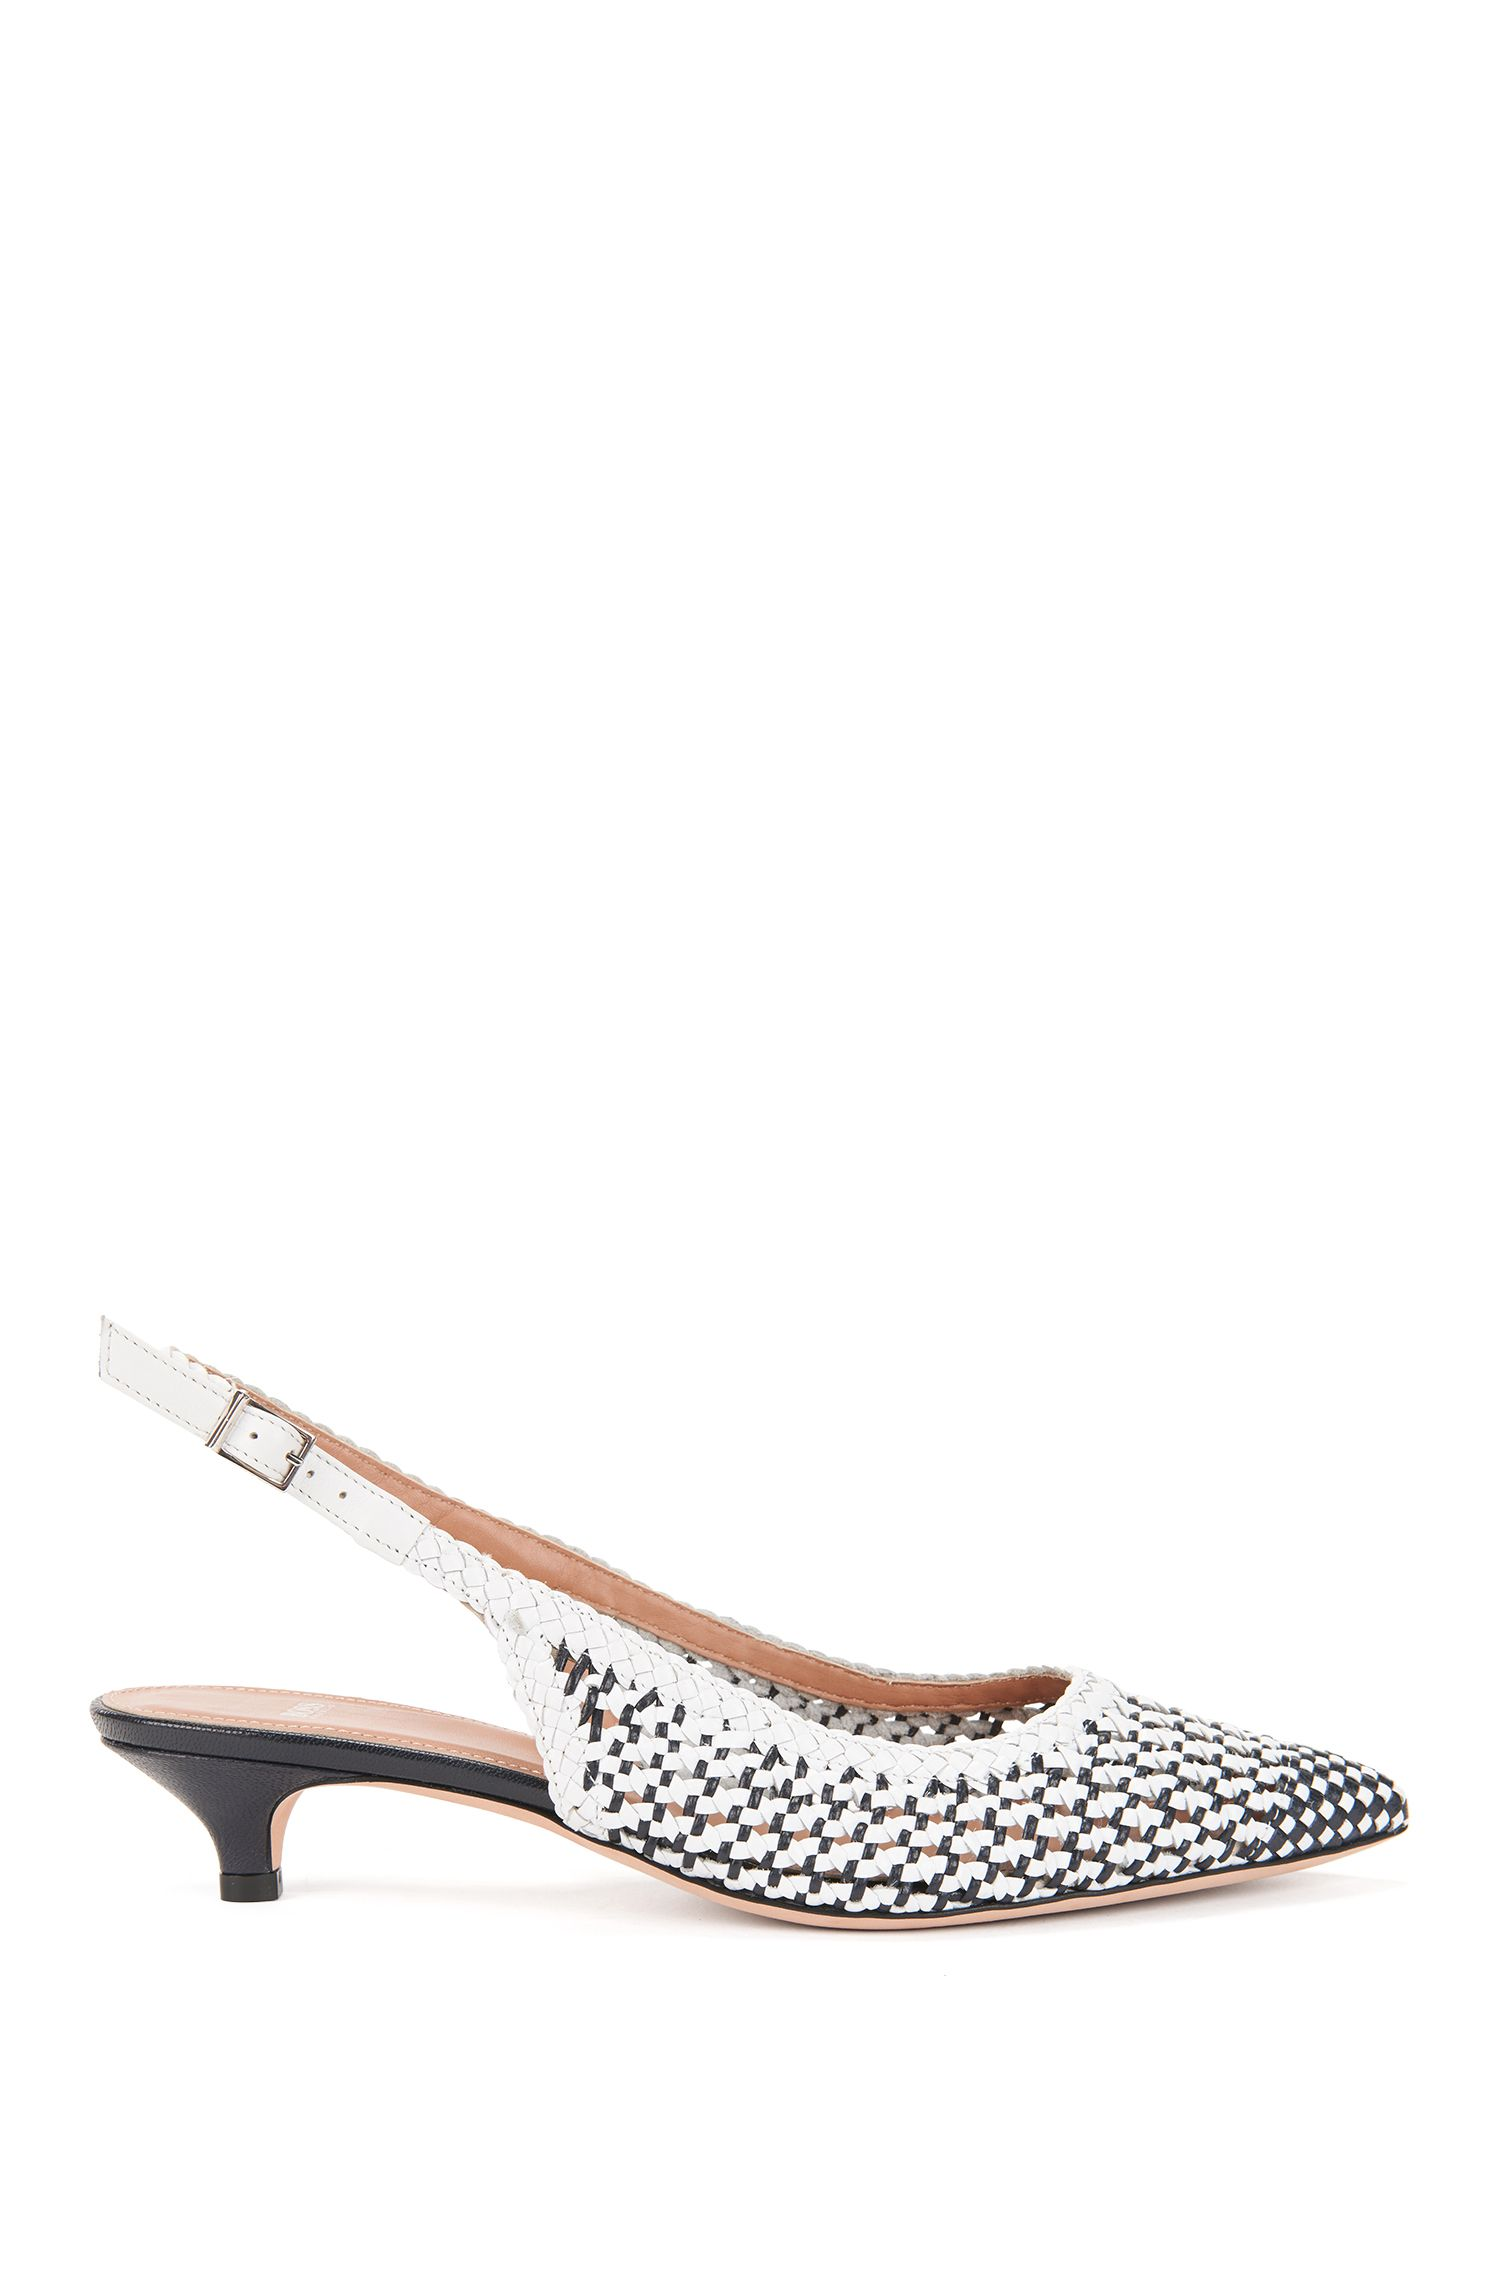 Woven Leather Slingback Pump | Eddie Sling Back